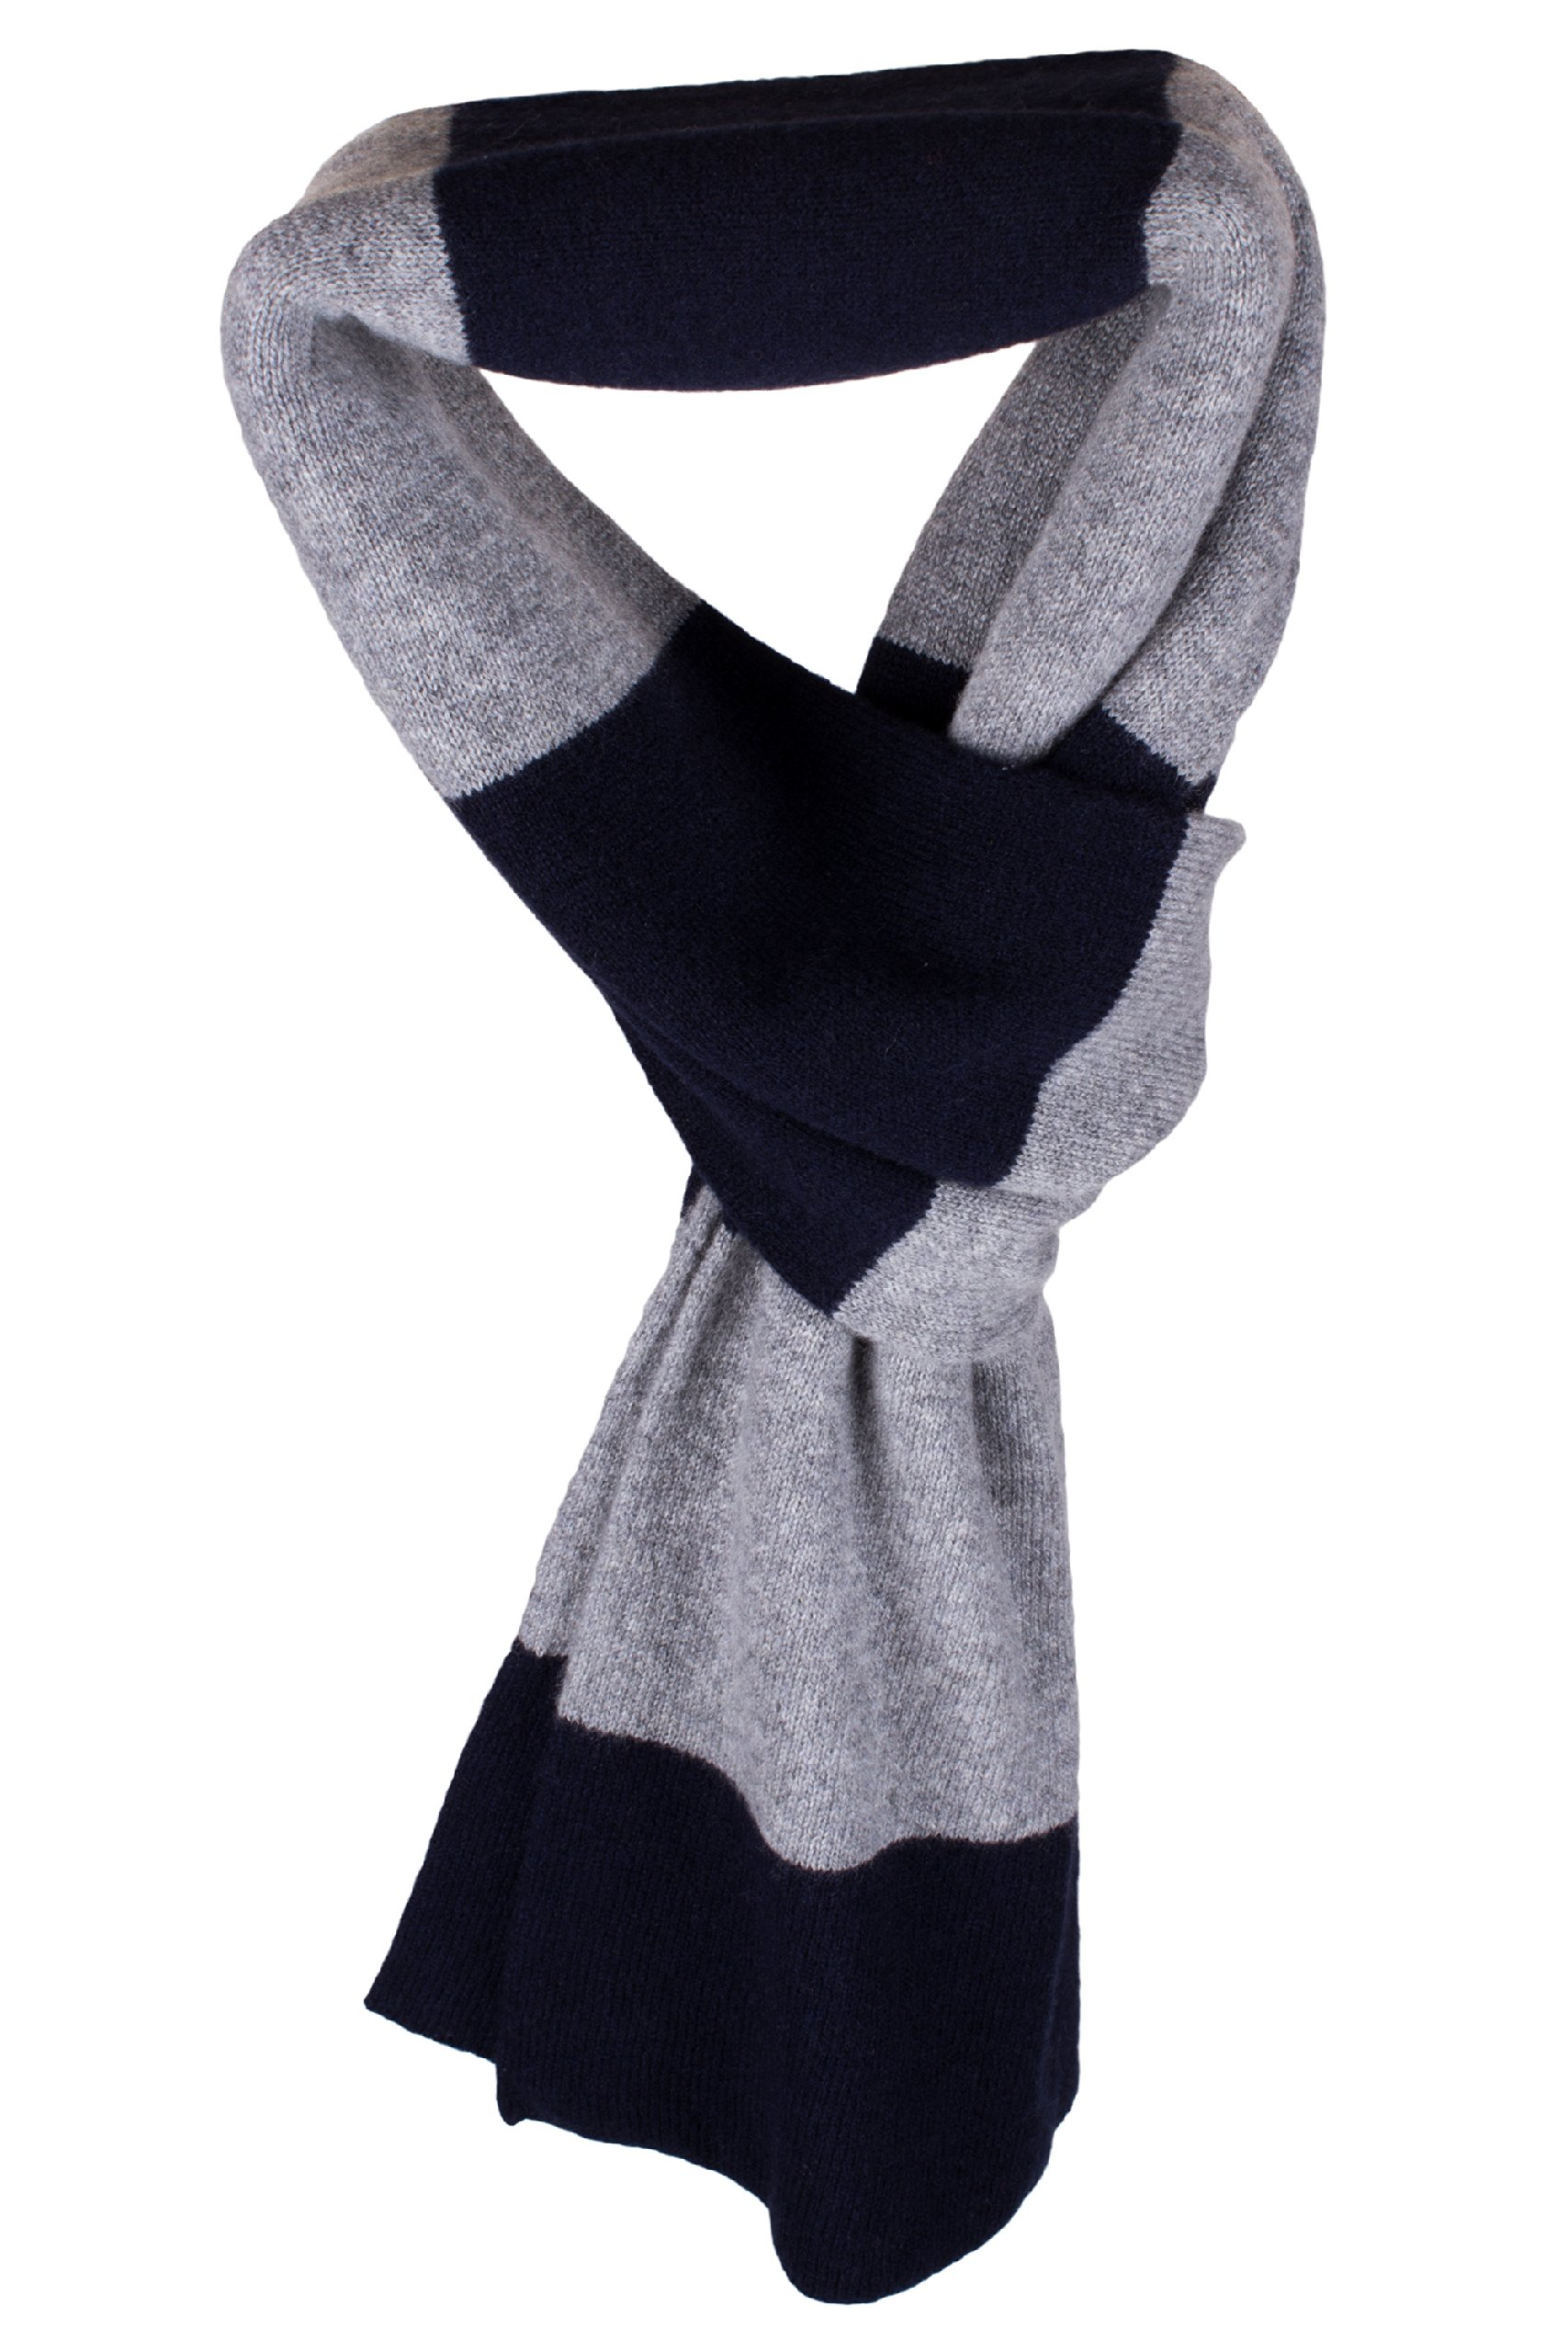 Mens Striped 100% Cashmere Scarf - Navy / Light Gray - hand made in Scotland by Love Cashmere